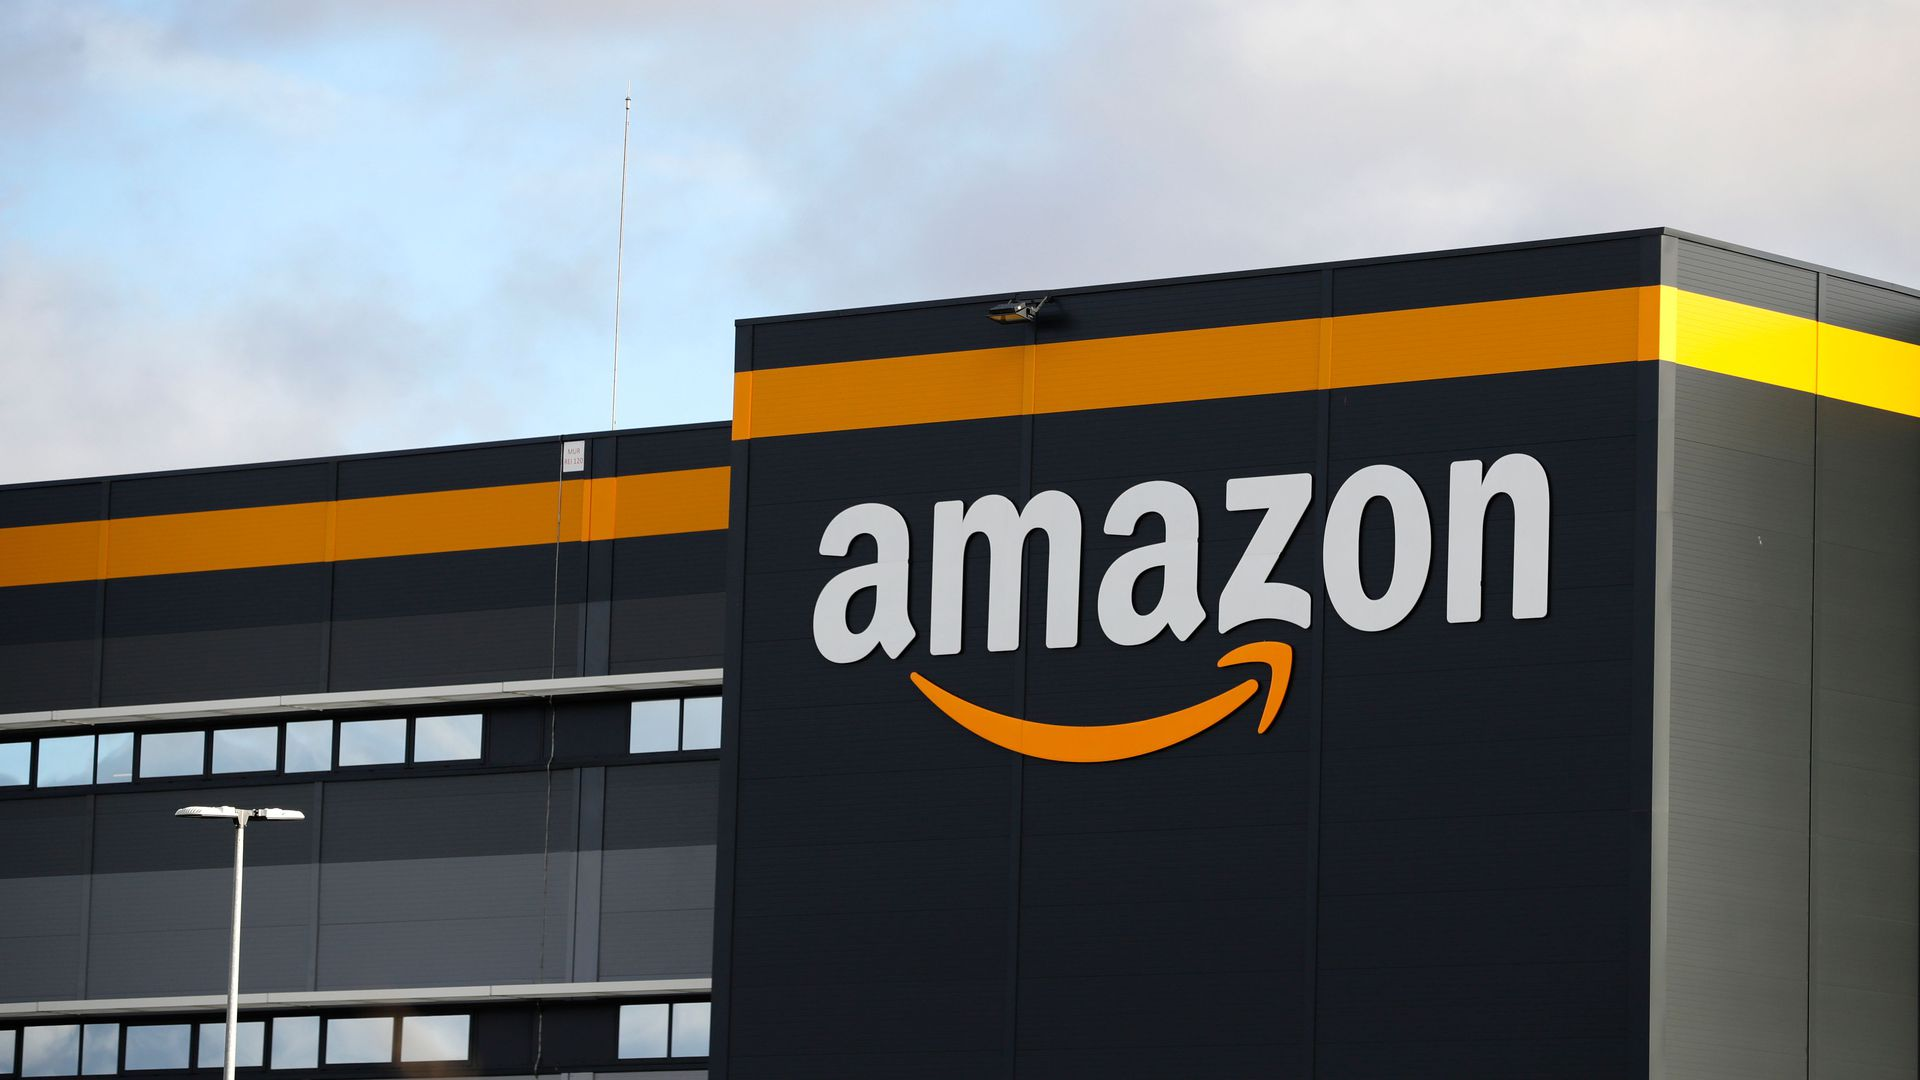 Amazon logo at one of the company's centre in Bretigny-sur-Orge